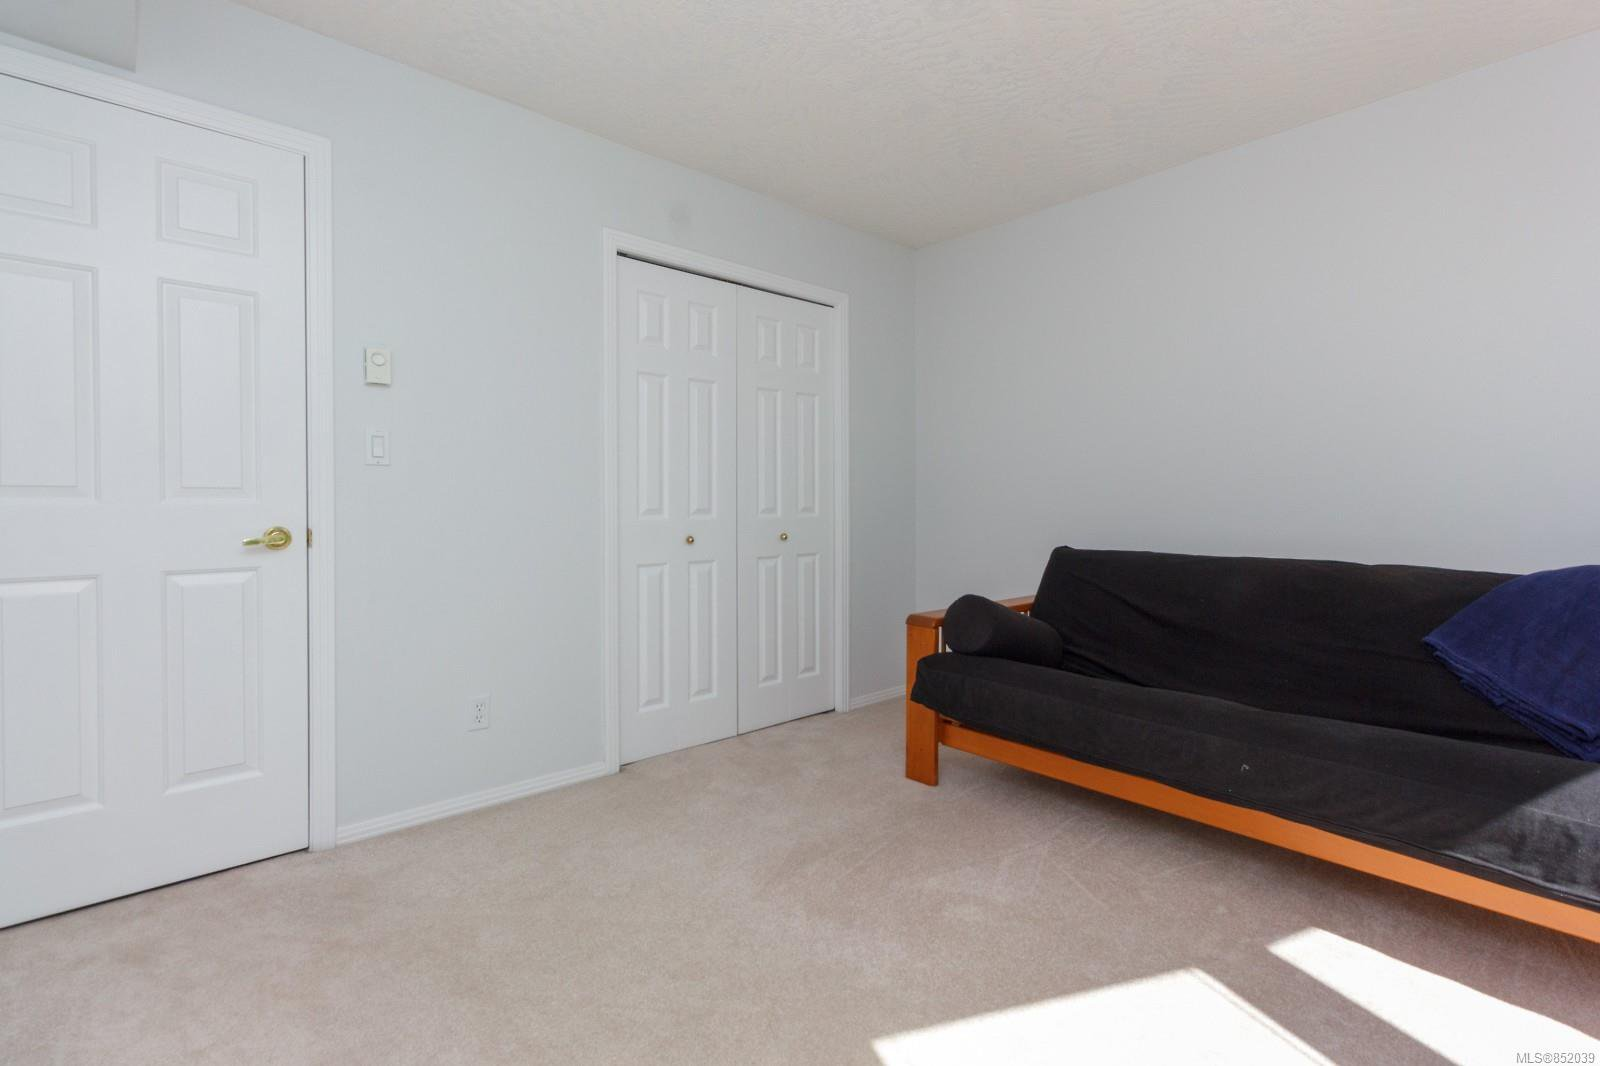 Photo 17: Photos: 109 1240 Verdier Ave in : CS Brentwood Bay Condo for sale (Central Saanich)  : MLS®# 852039